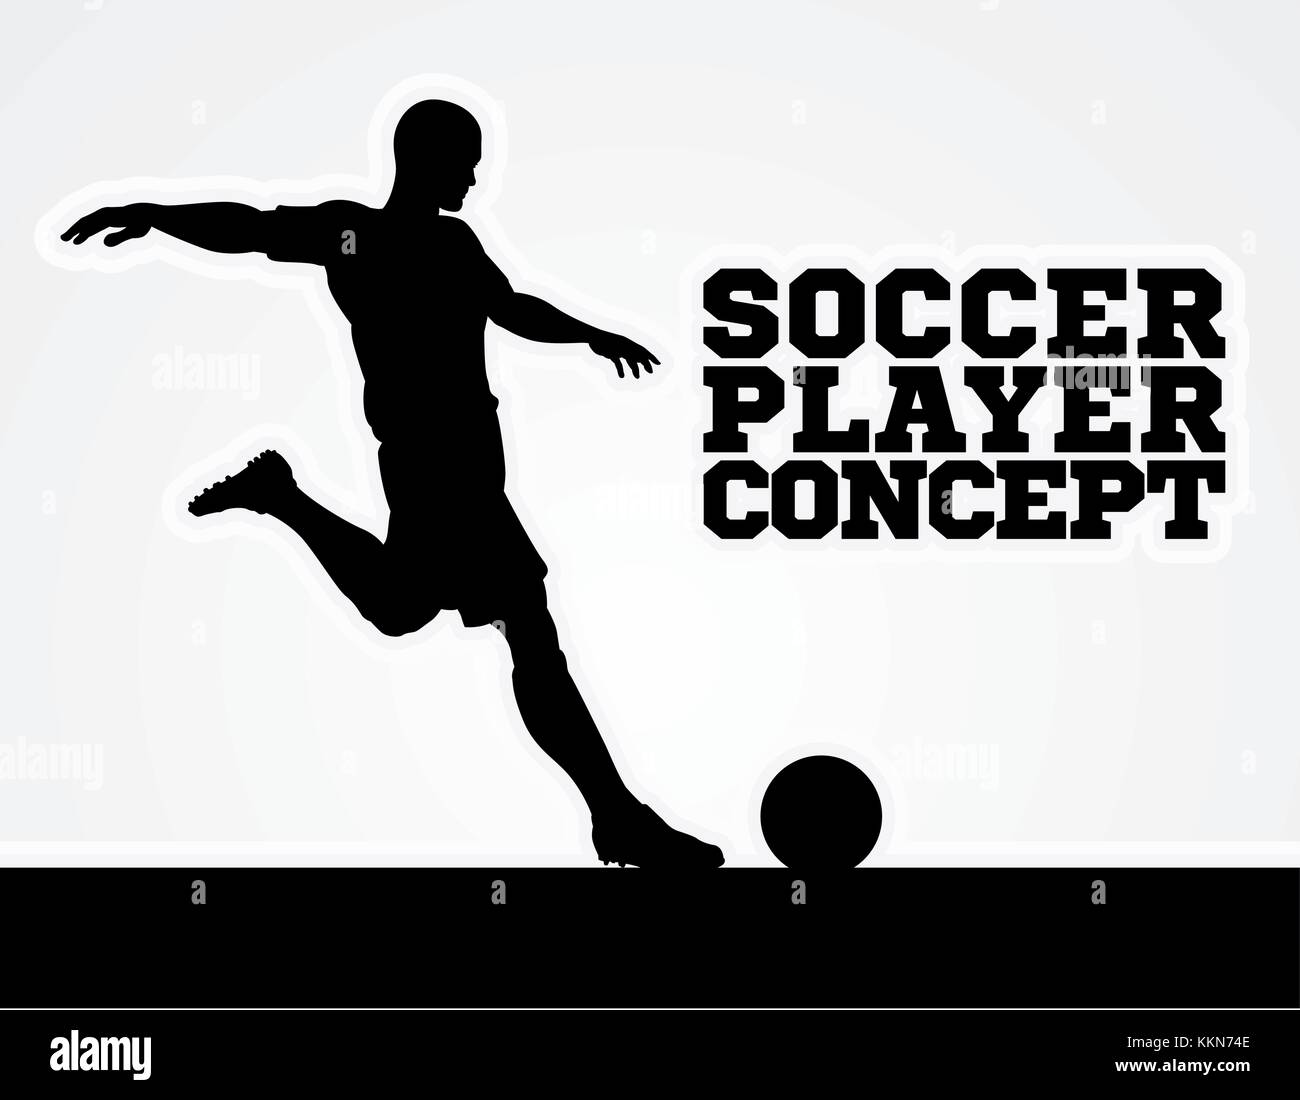 Soccer Football Player Concept Silhouette - Stock Image